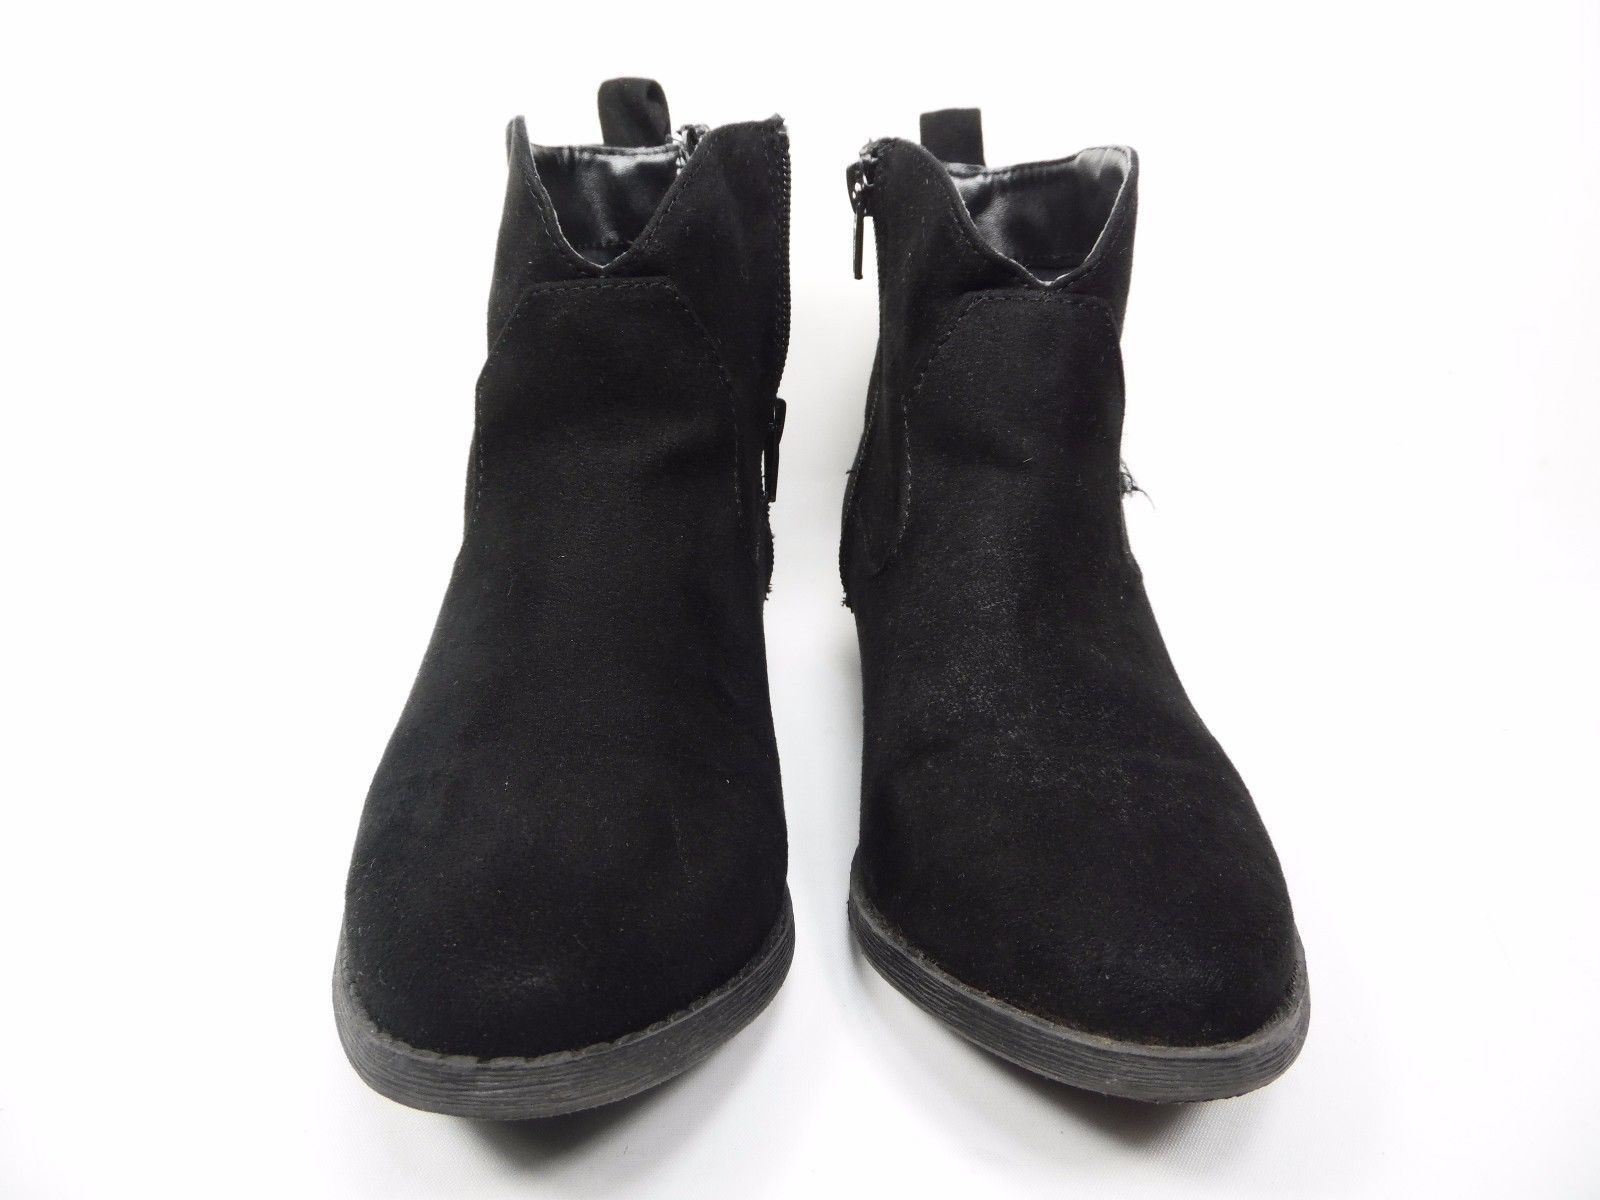 Arizona Booker Girls Fringe Booties Little Kids Black Size 4M